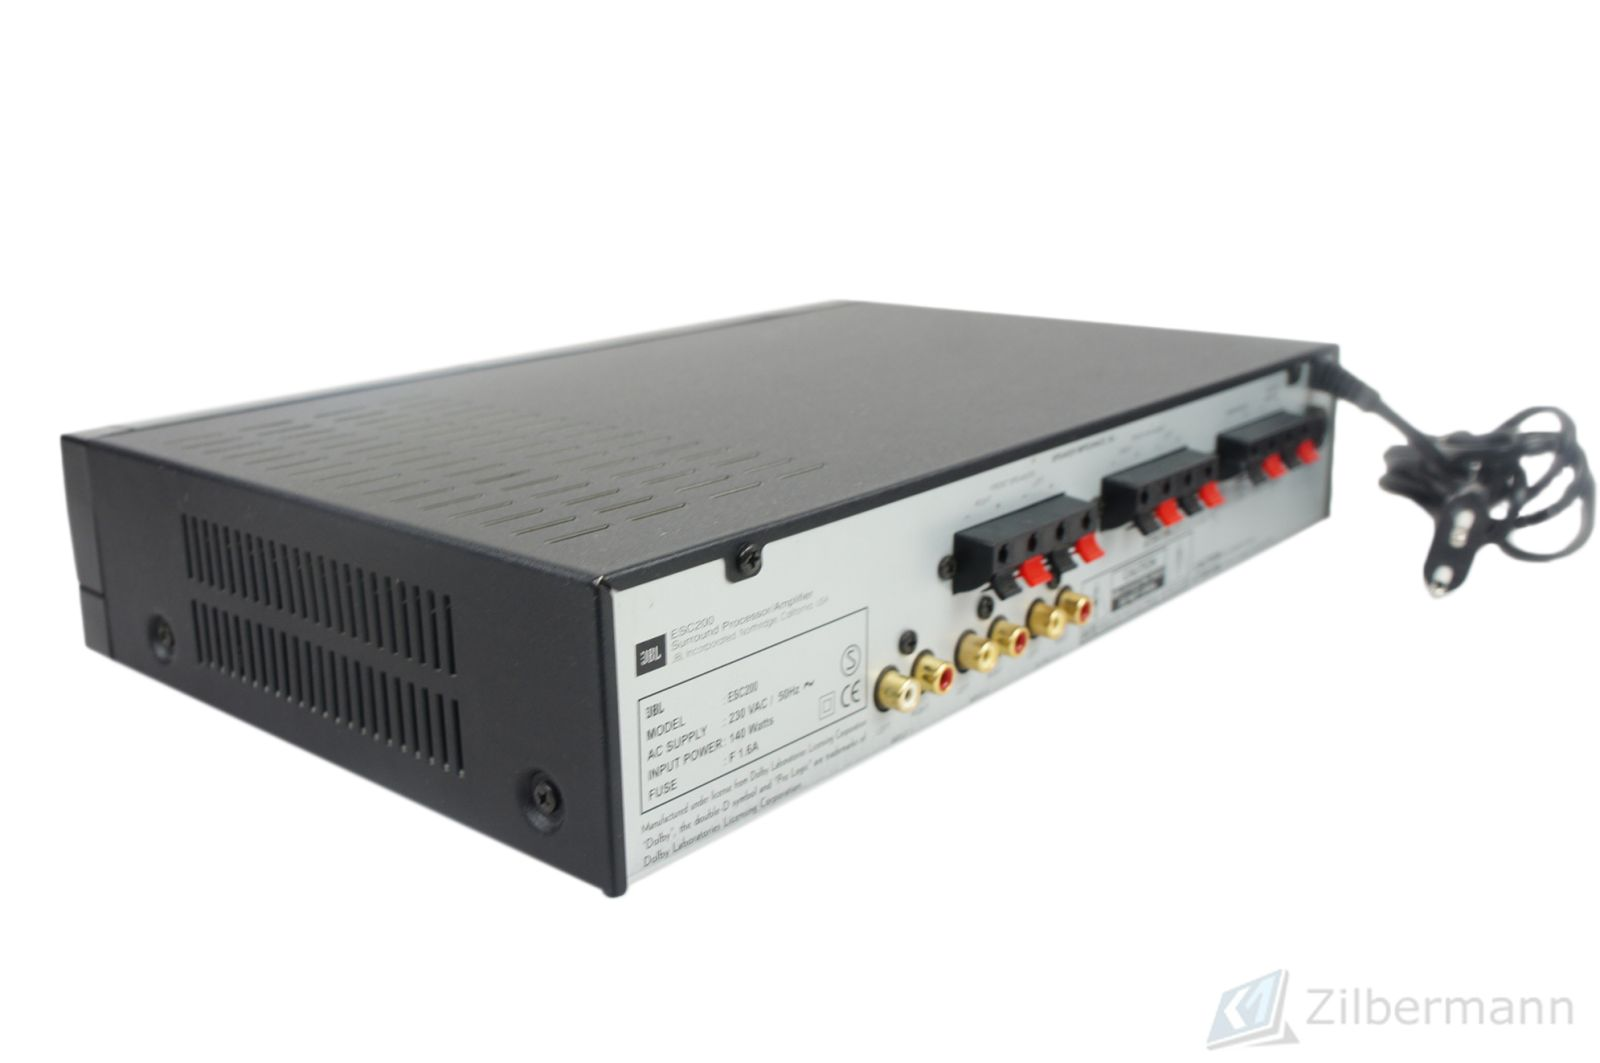 JBL_ESC_200_Surround_Processor_Amplifier_05